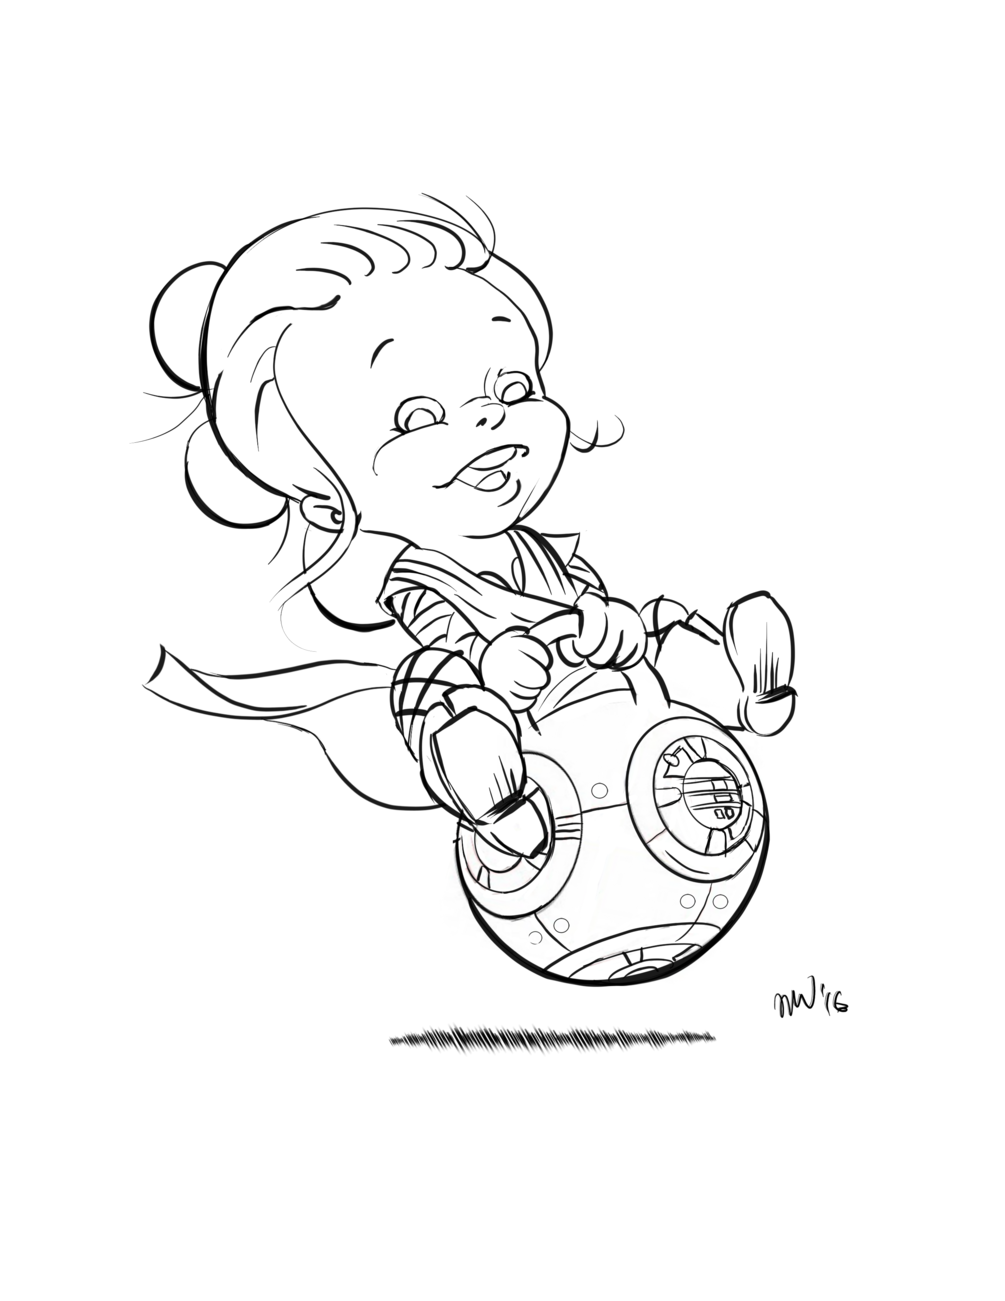 star wars rey coloring pages rey from star wars coloring page rey wars star pages coloring